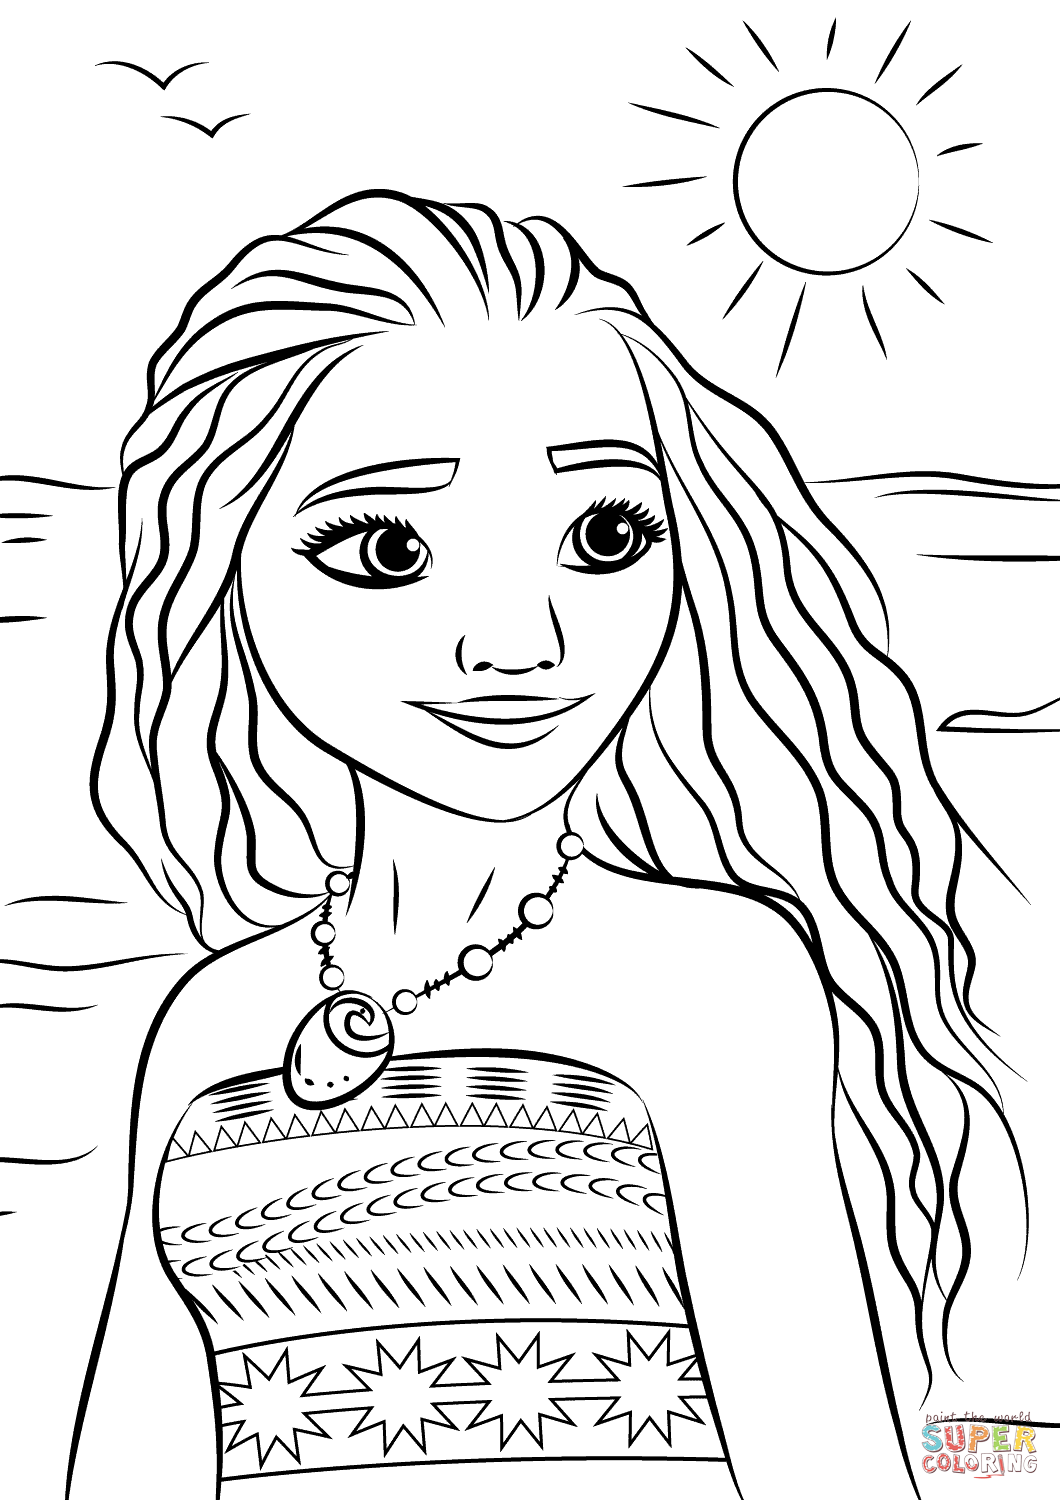 Princess Moana Portrait coloring page | Free Printable ...